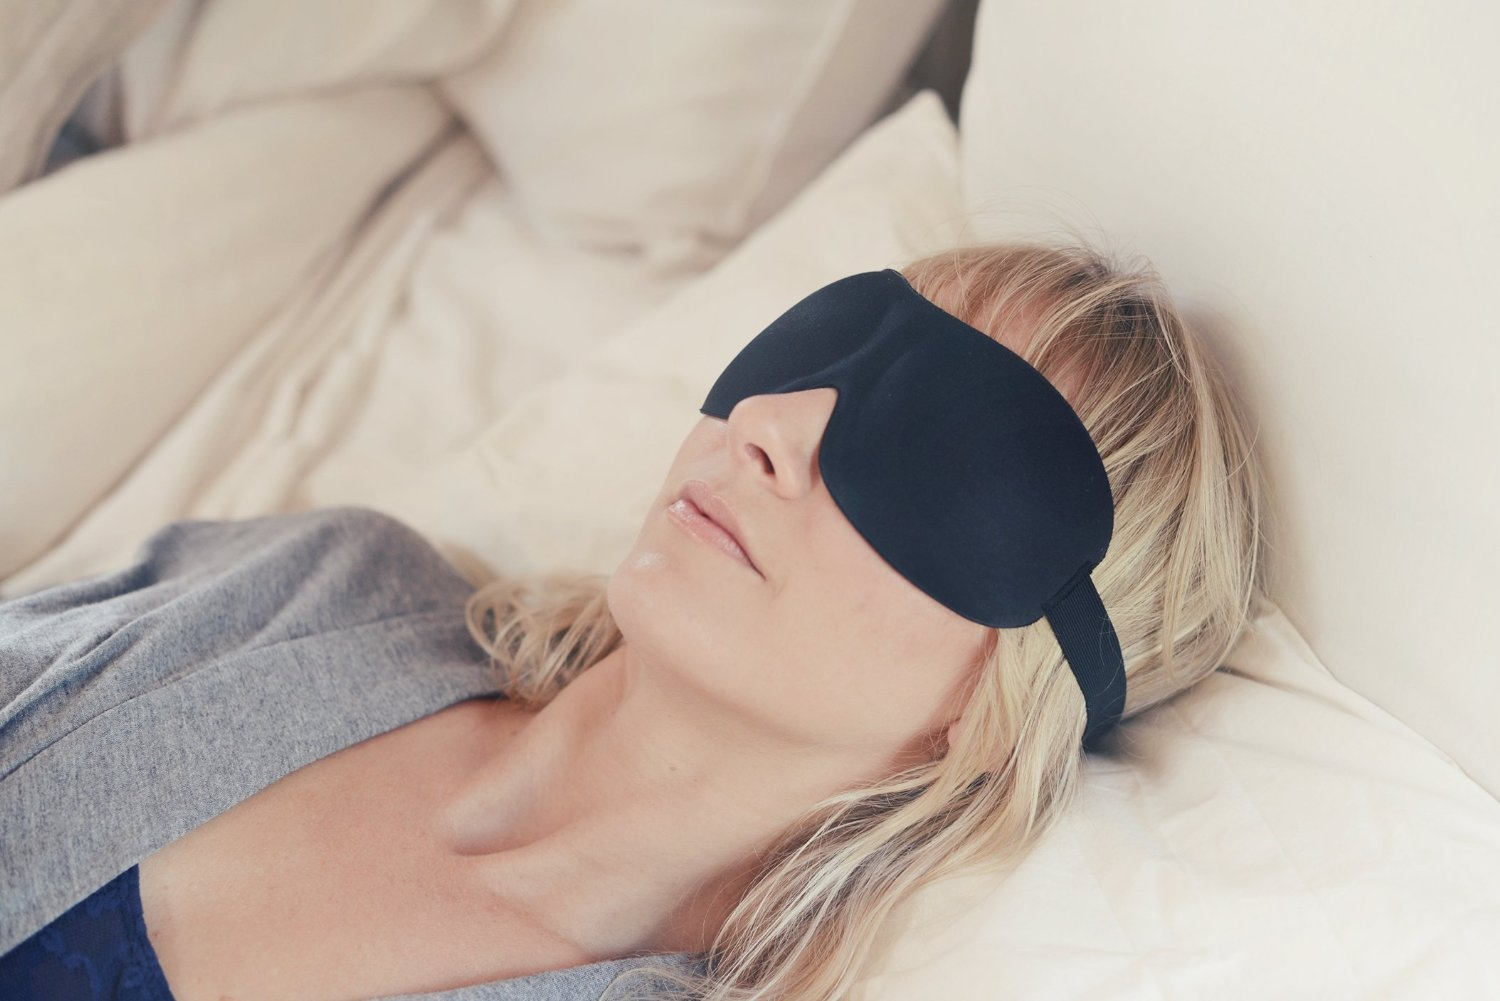 #1 Rated Patented Sleep Mask – Premium Quality Eye Mask with Contoured Shape by Nidra – Ultra Lightweight & Comfortable – Adjustable Head Strap to Fit All Sizes – Sleep Anywhere Anytime – Ideal for Men and Women – Great for Travelers – Sleep Satisfaction Guaranteed